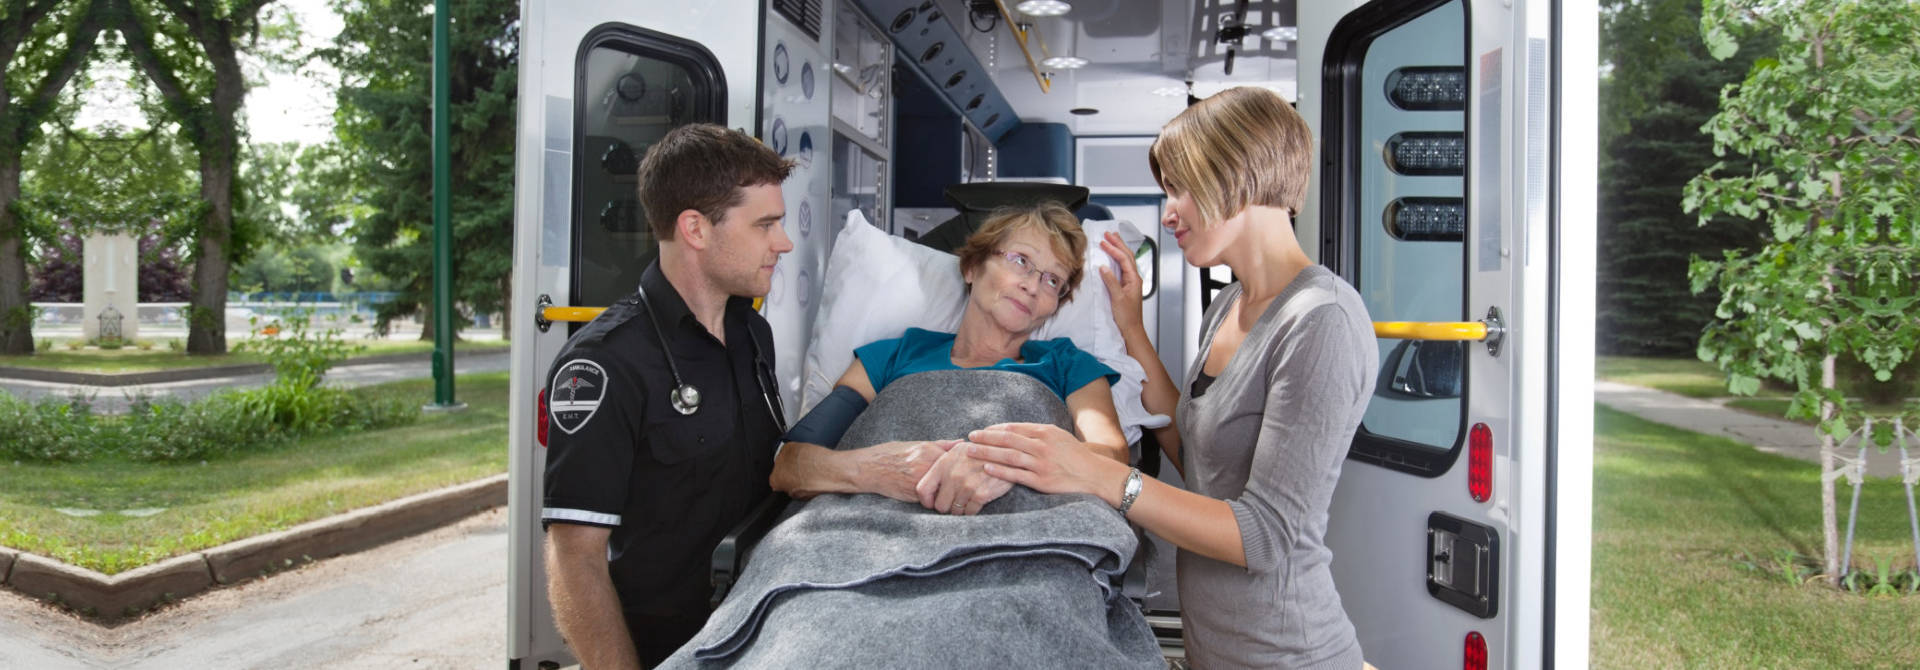 Patient inside an ambulance vehicle